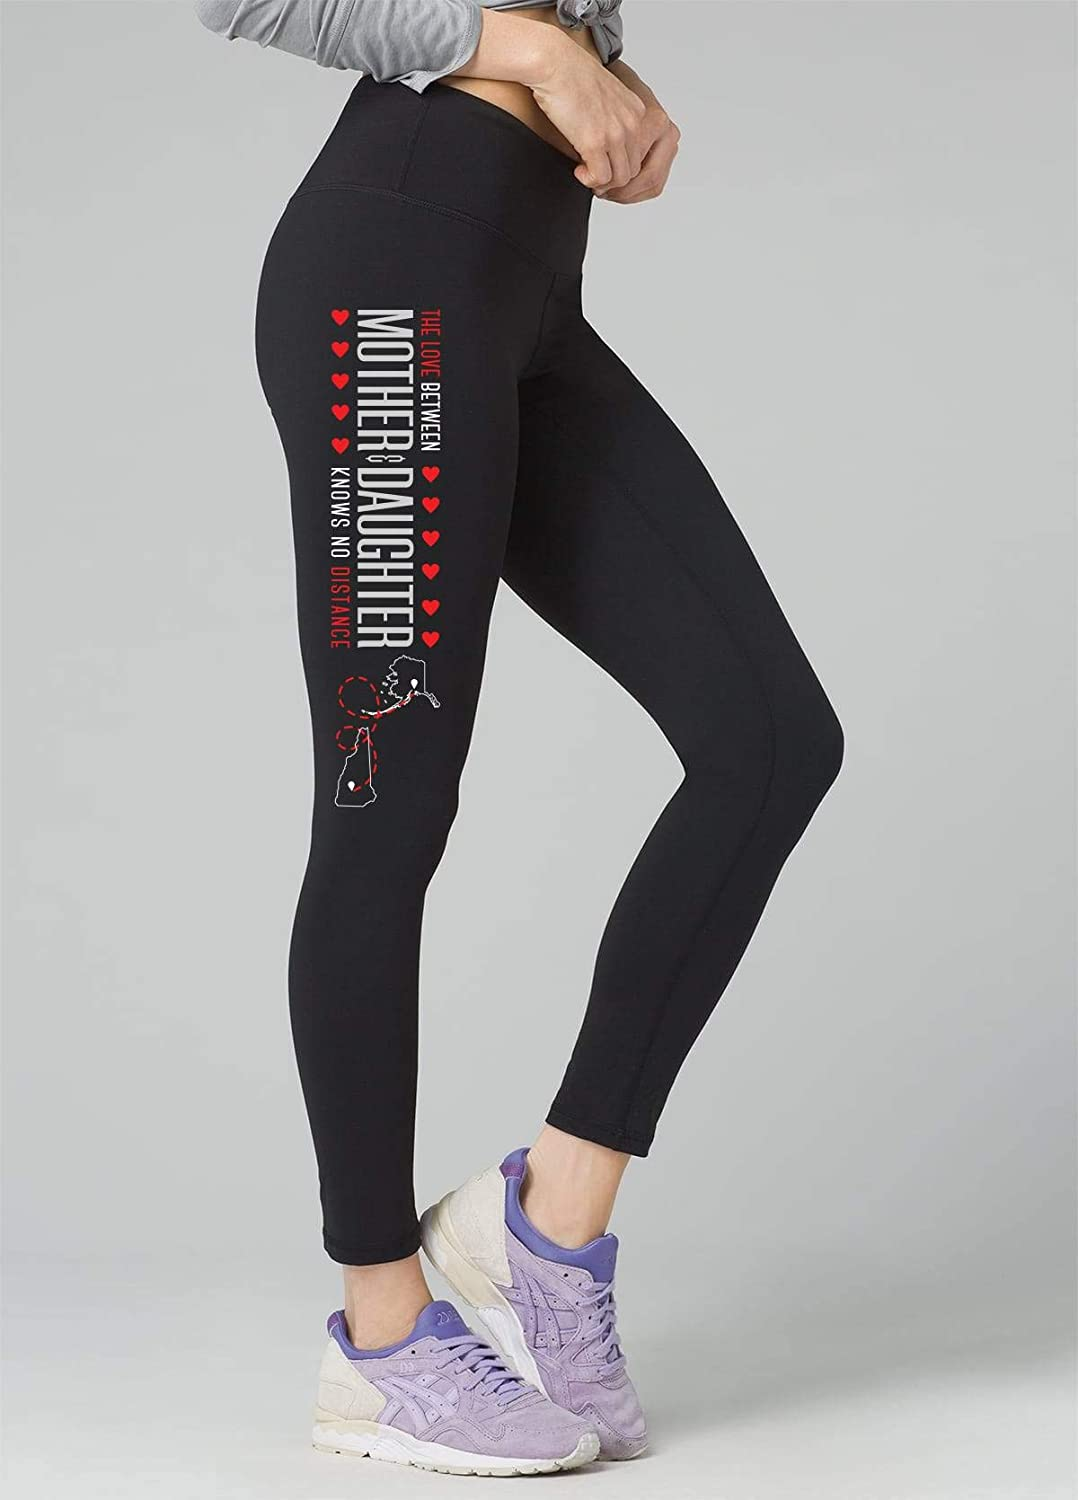 Idea Mother Day Leggings Alaska AK New Hampshire NH The Love Between Mother /& Daughter Knows no Distance